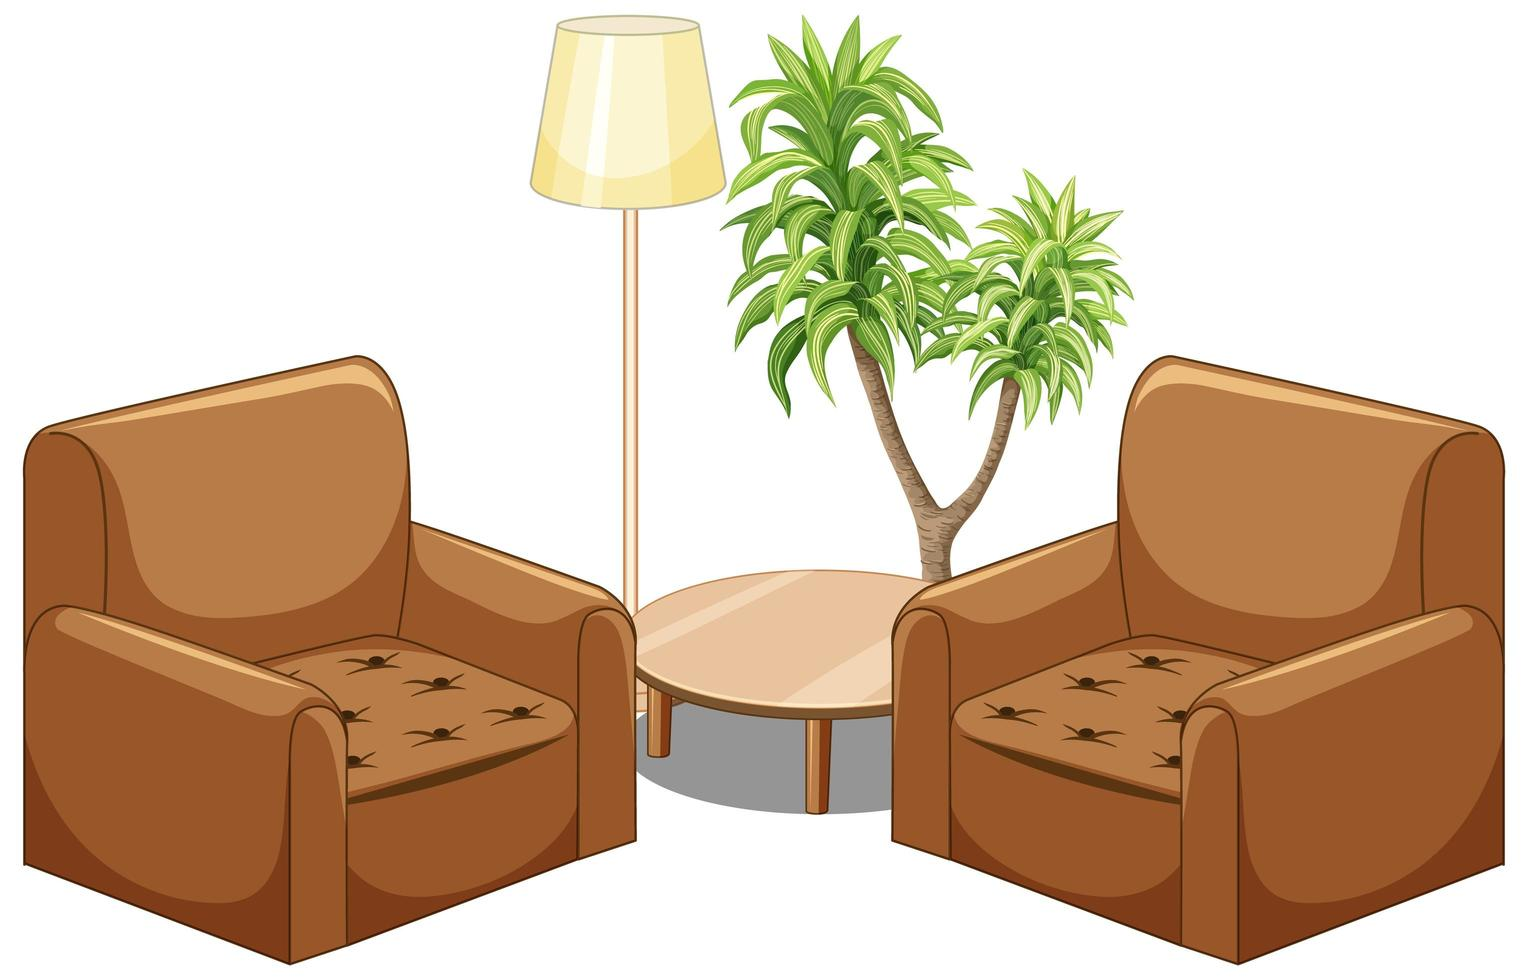 Brown sofa furniture with lamp and tree isolated on white background vector